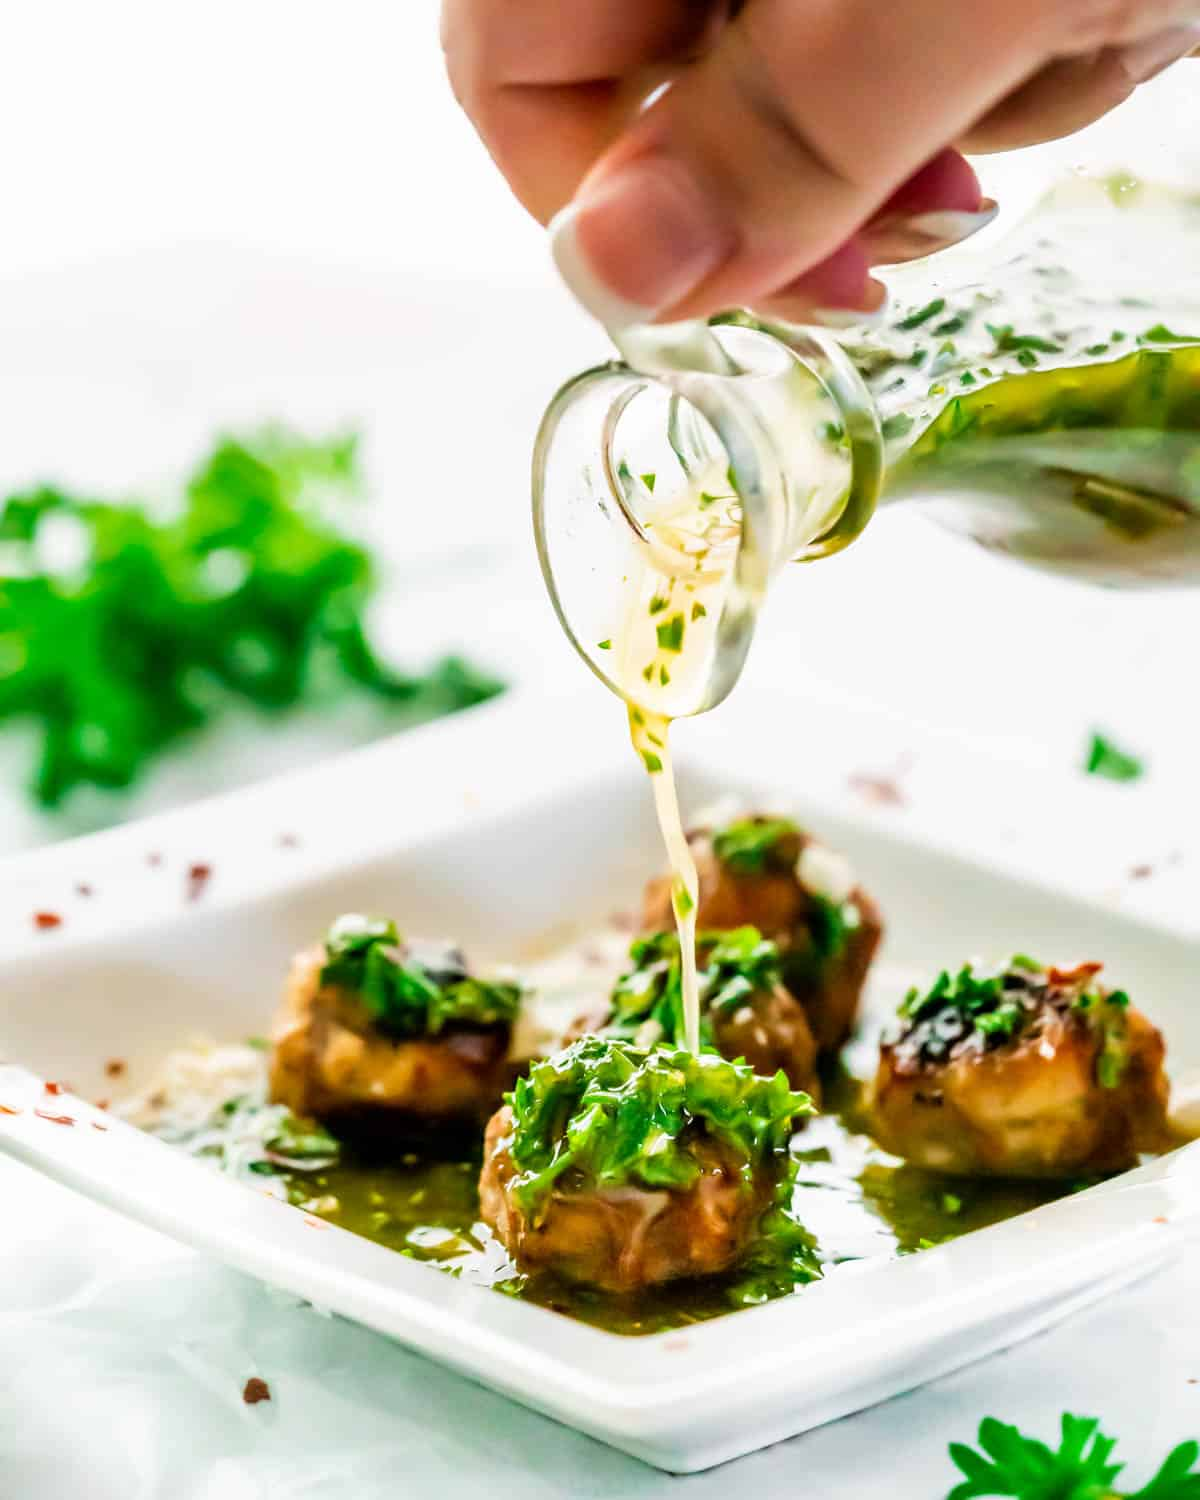 pouring chimichurri sauce over meatballs